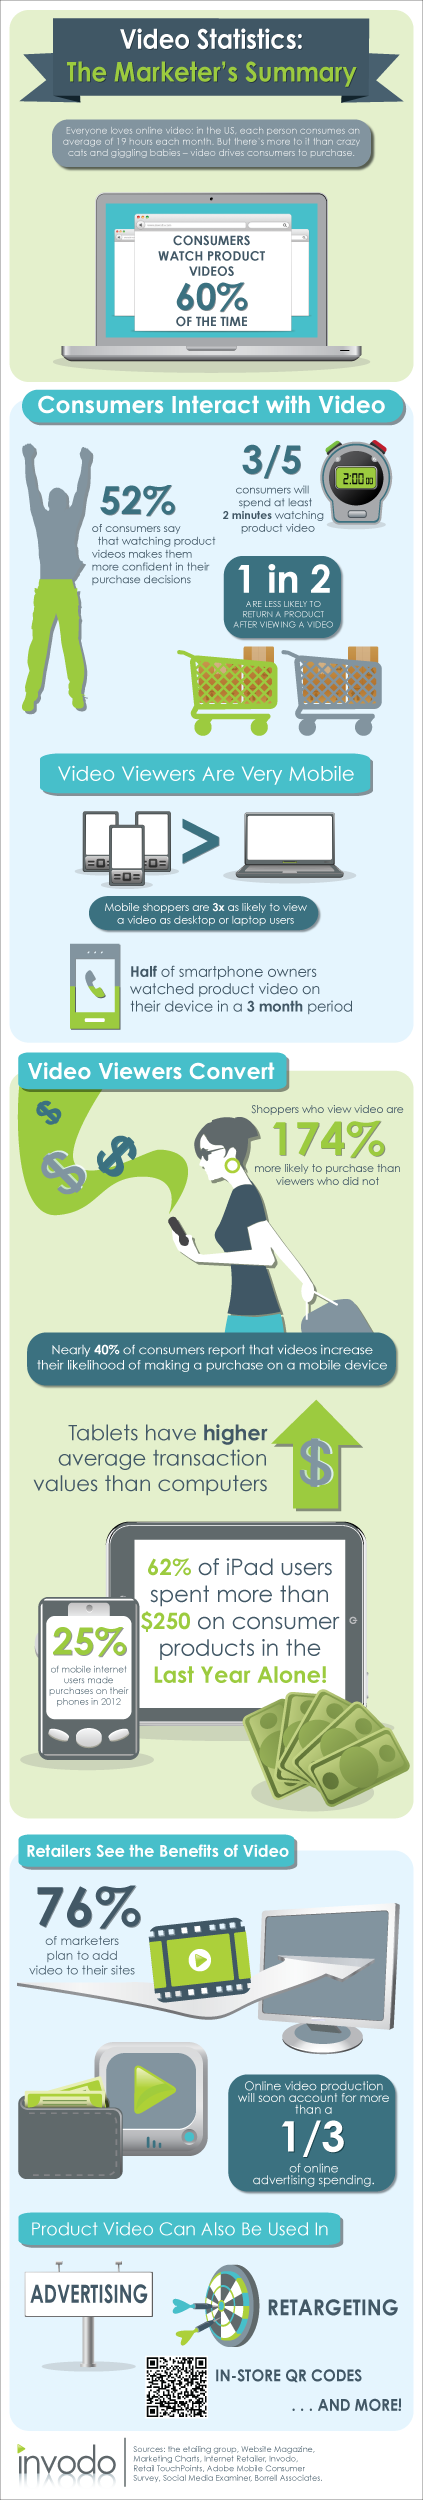 Video Statistics - The Marketer's Summary